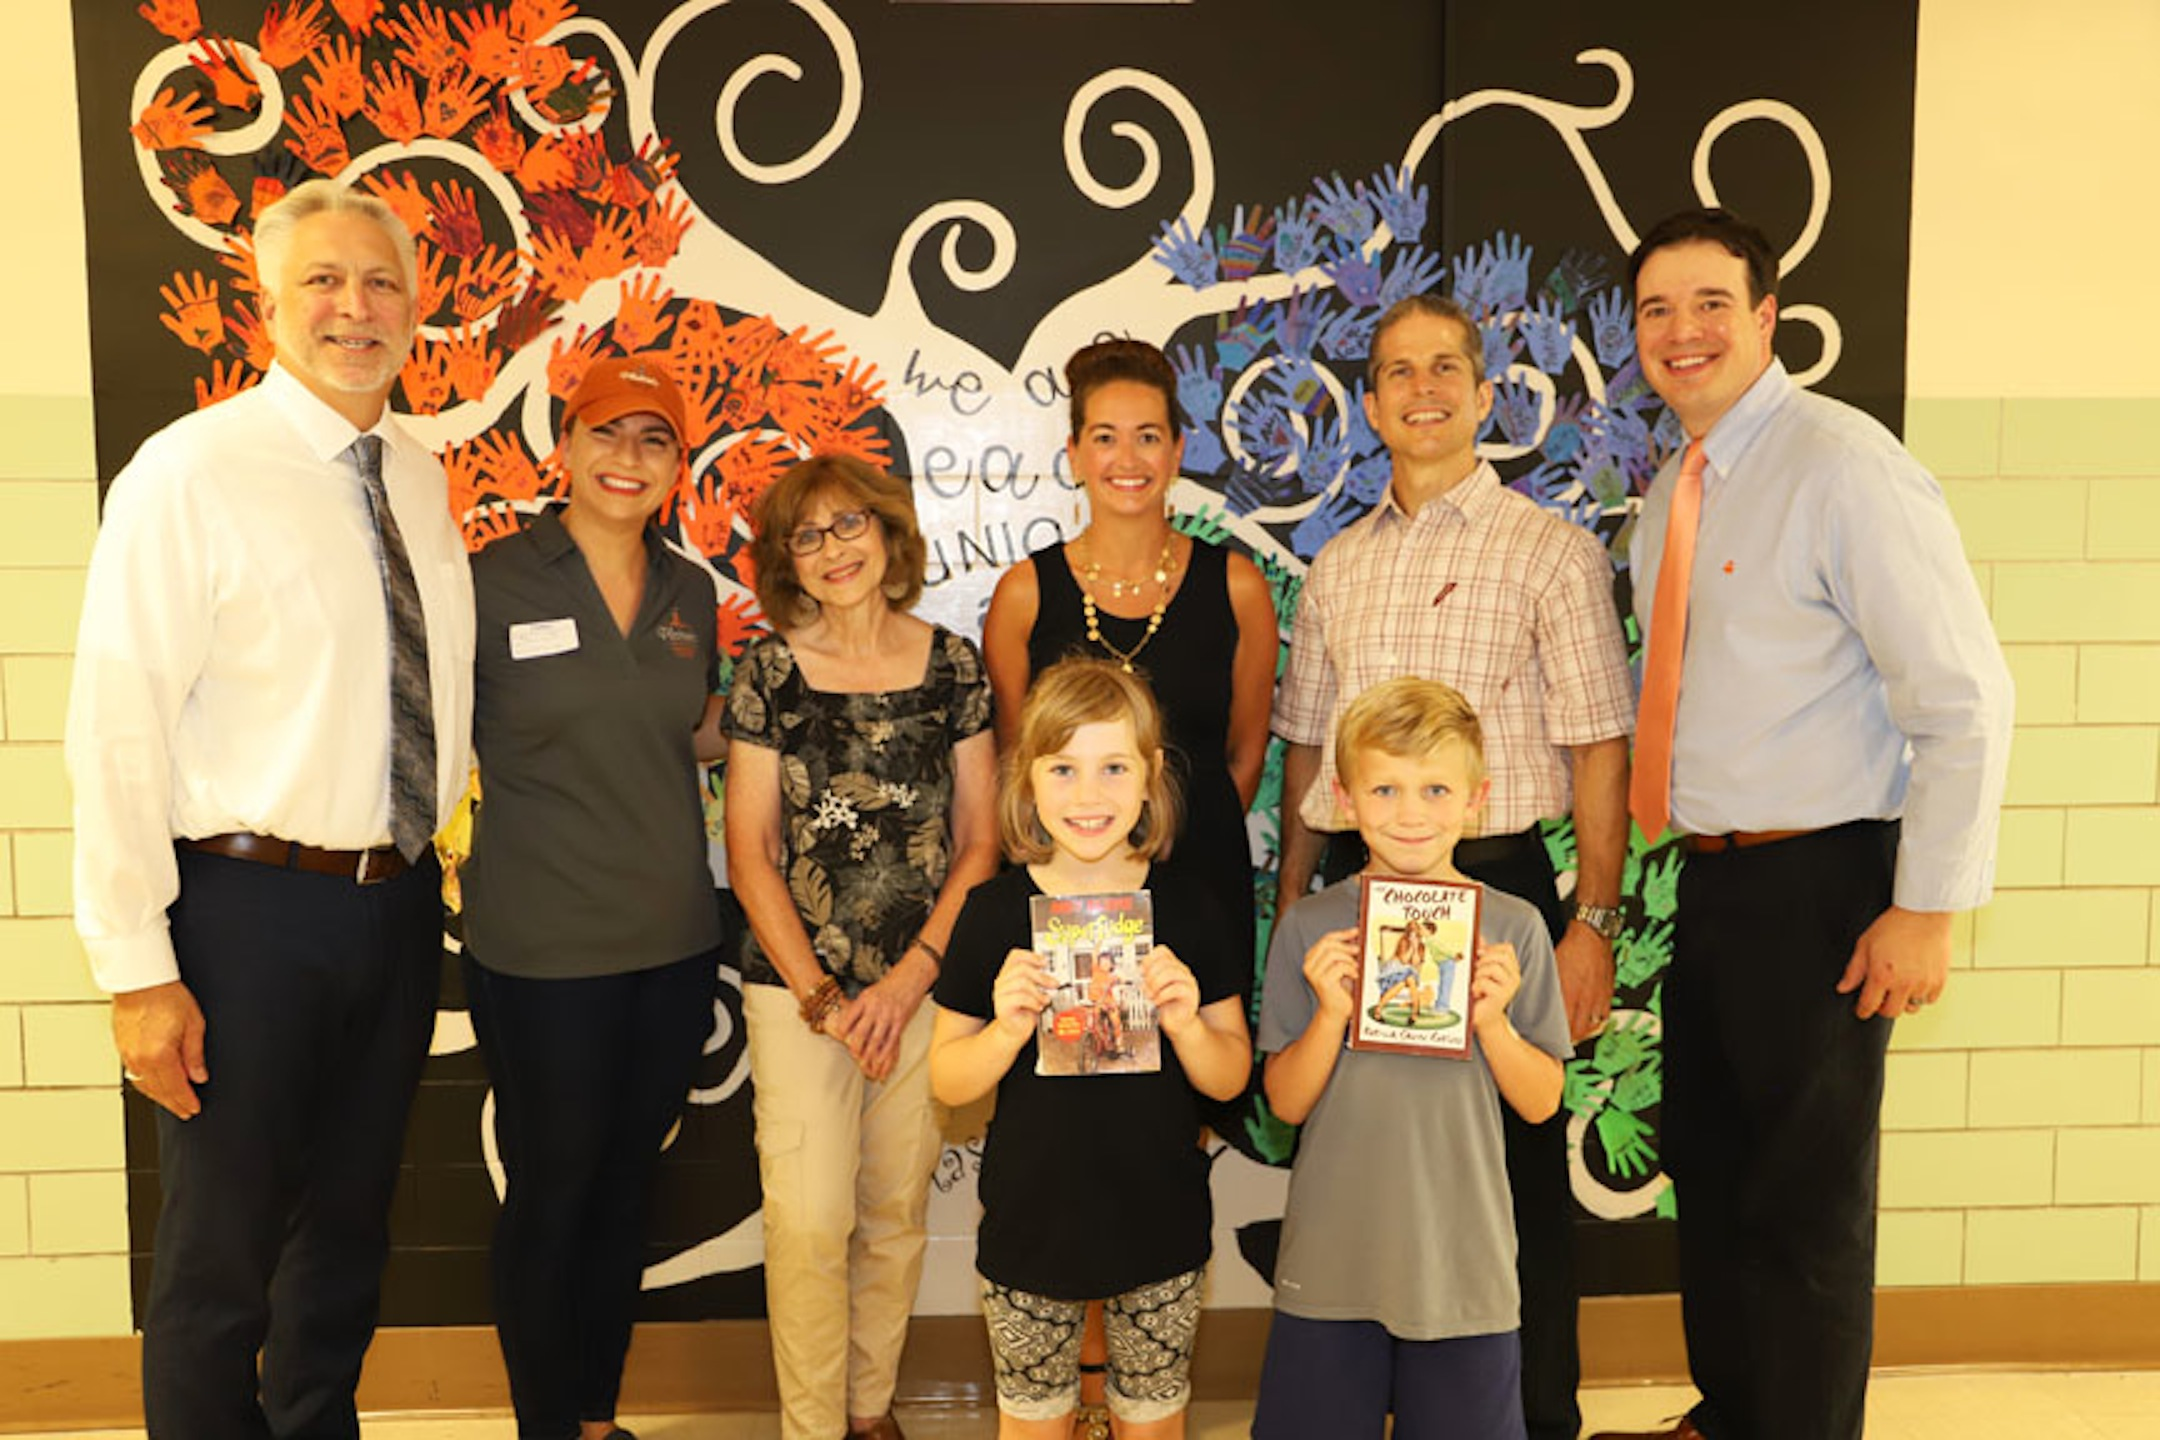 From left, North Tonawanda Superintendent Greg Woytila; General Manager Platter's Chocolates Kelly DiGuiseppe; NT Librarian Marcia Bugyi; first grade teacher Jayne Davignon; Counselor Nathan Schelble; Ohio Street Principal Mike Hiller; and students Jeannette Hayley and Raymond Keidel.